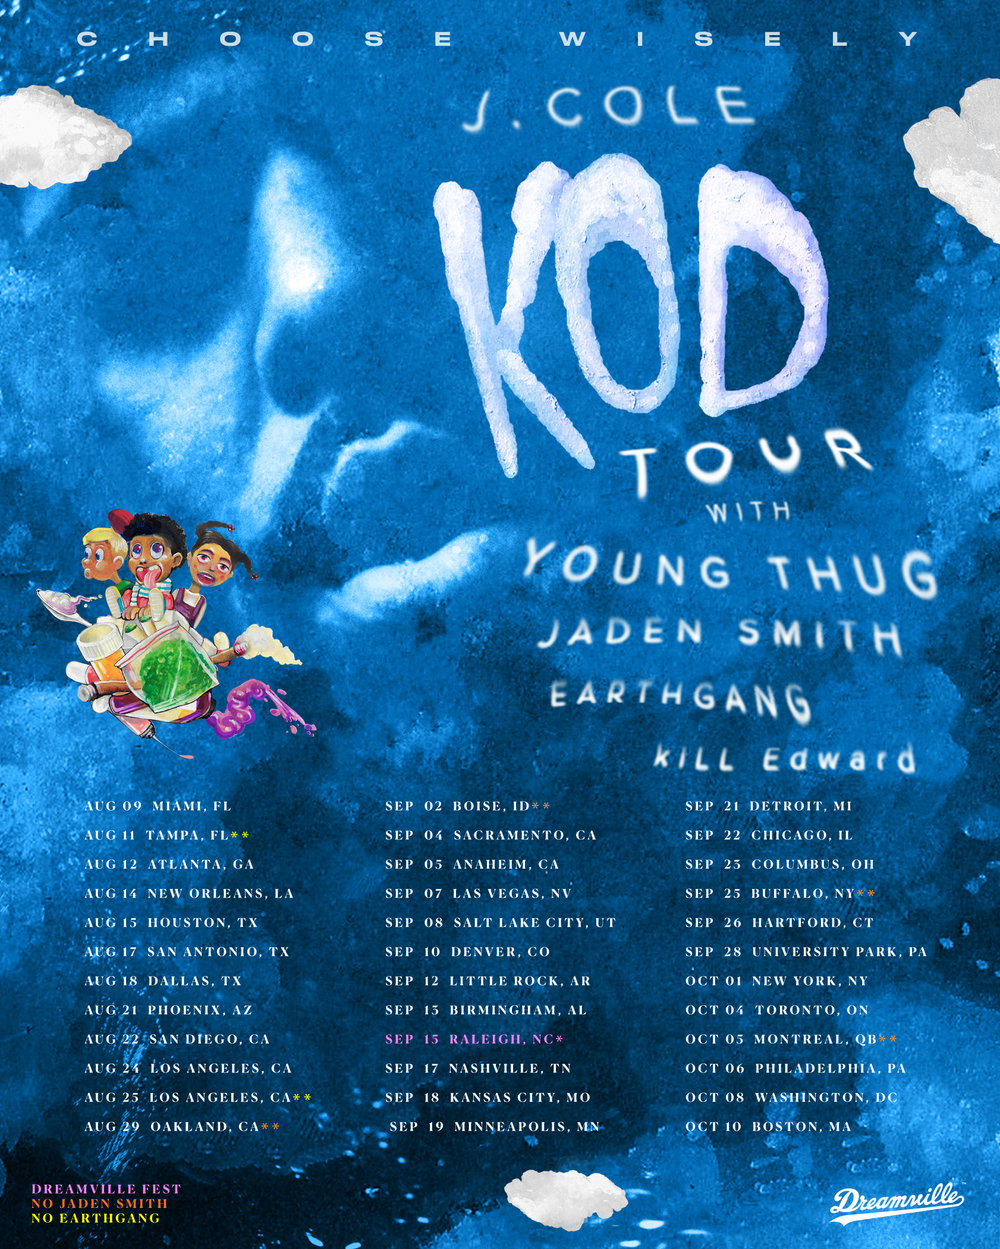 The lineup for J Cole's KOD tour that recently kicked-off in Miami.